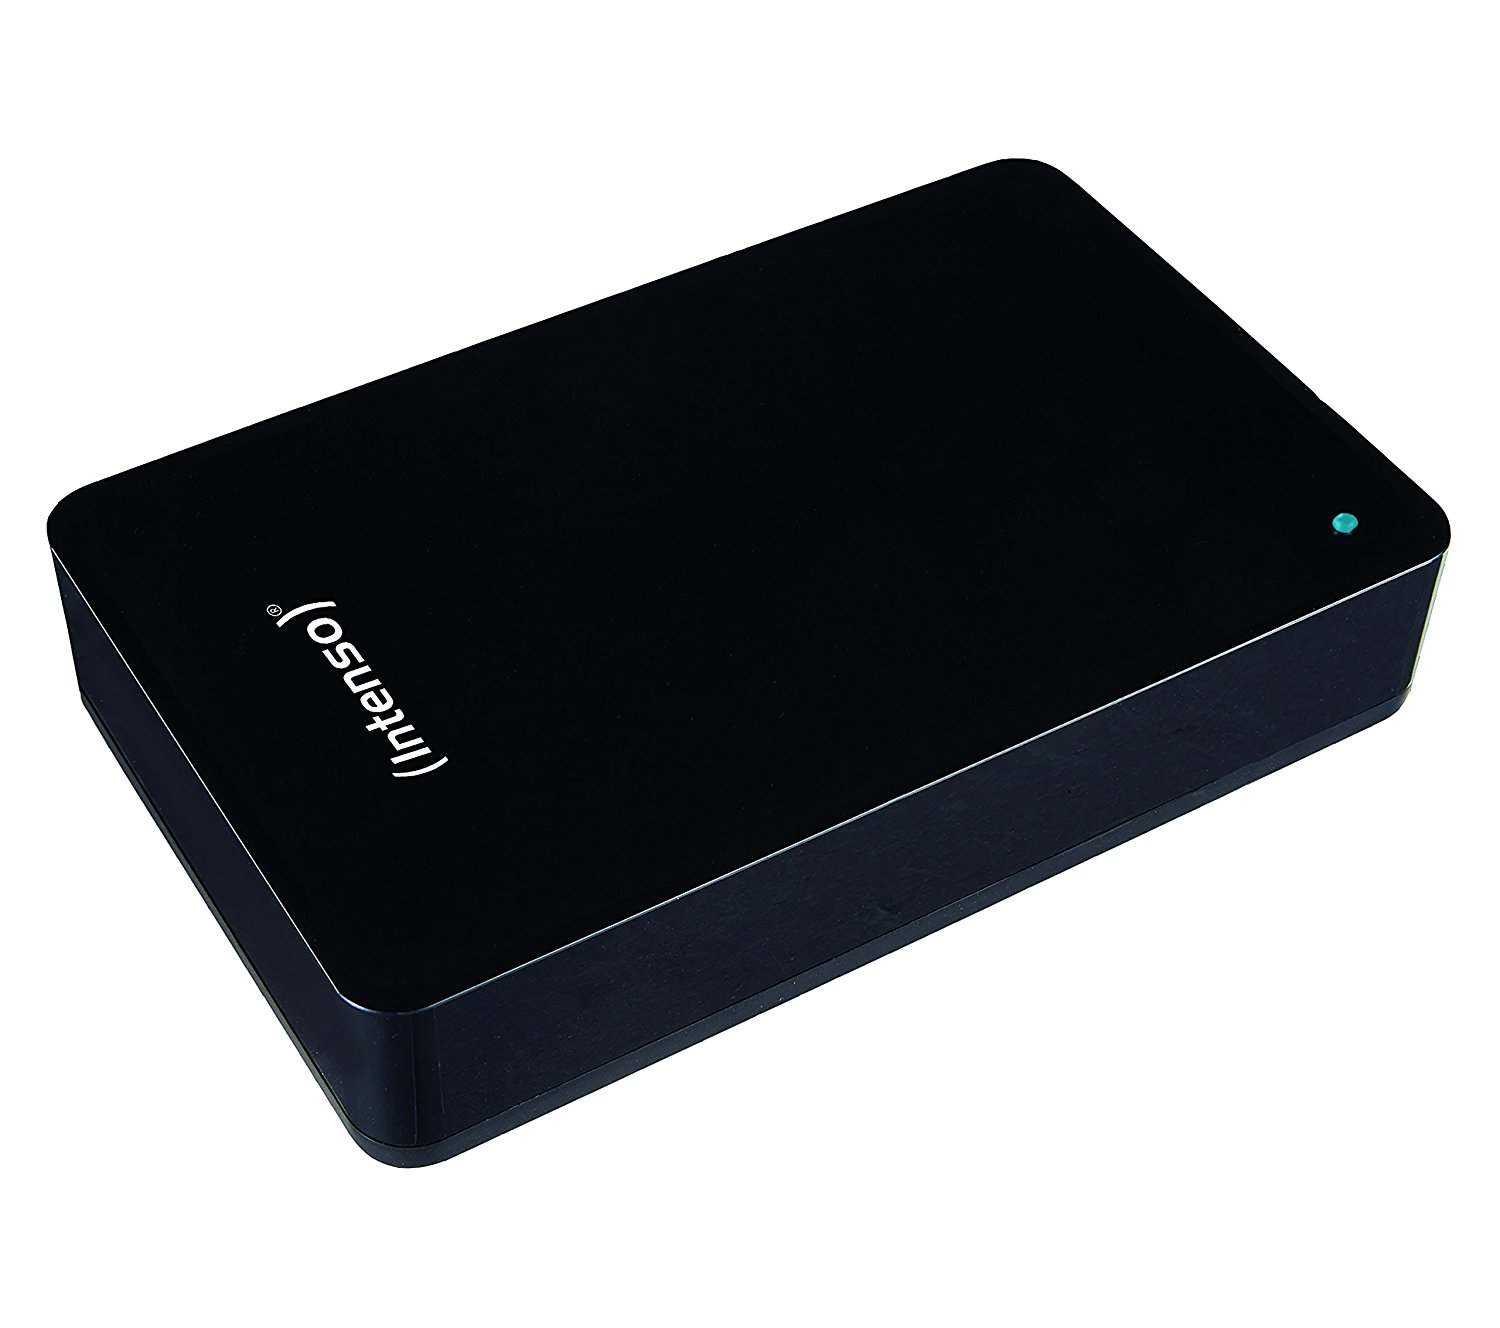 Intenso HDD Memory Center 5TB USB 3.0 für 125,-€